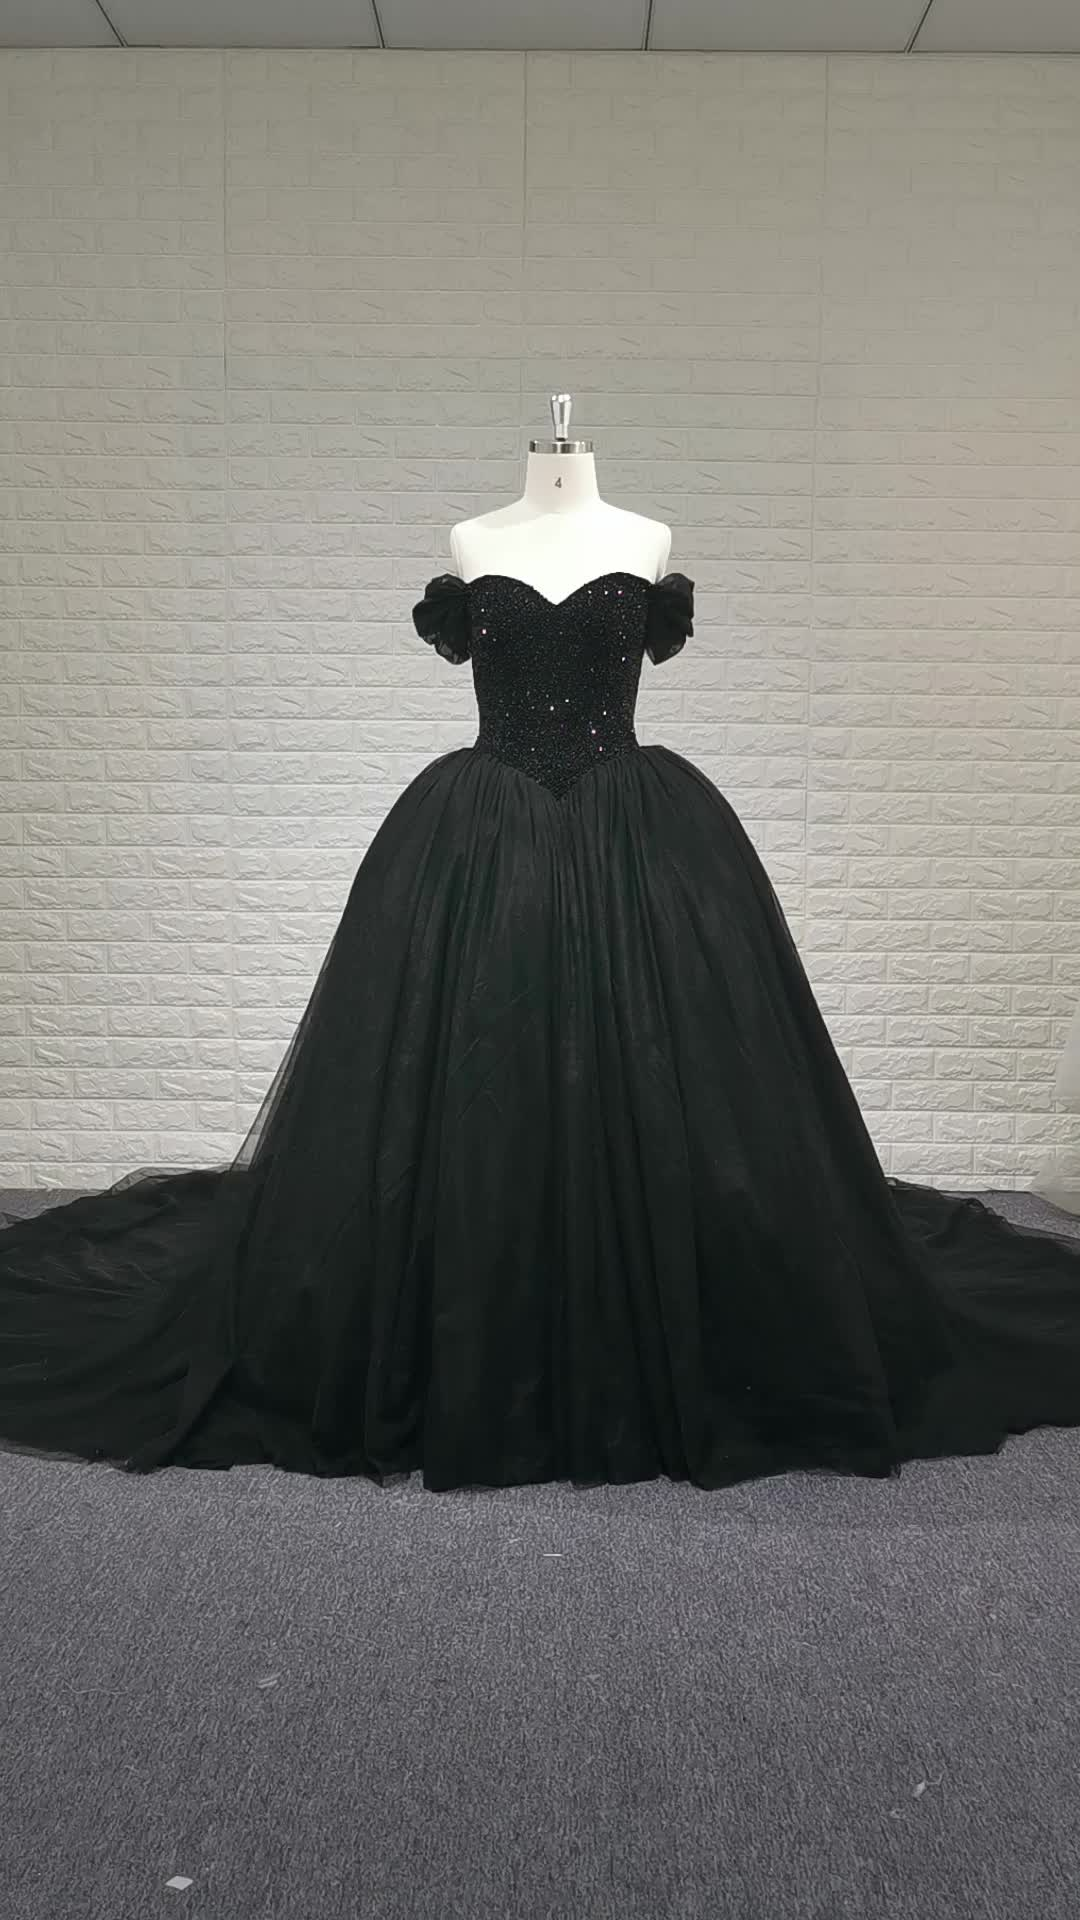 Off Shoulder Luxury Sweetheart Crystal Ball Gown Cathedral Train Black Wedding Dresses Buy Off Shoulder Black Wedding Dresses Black Crystal Ball Gown Wedding Dress Luxury Cathedral Train Bridal Gowns Product On Alibaba Com